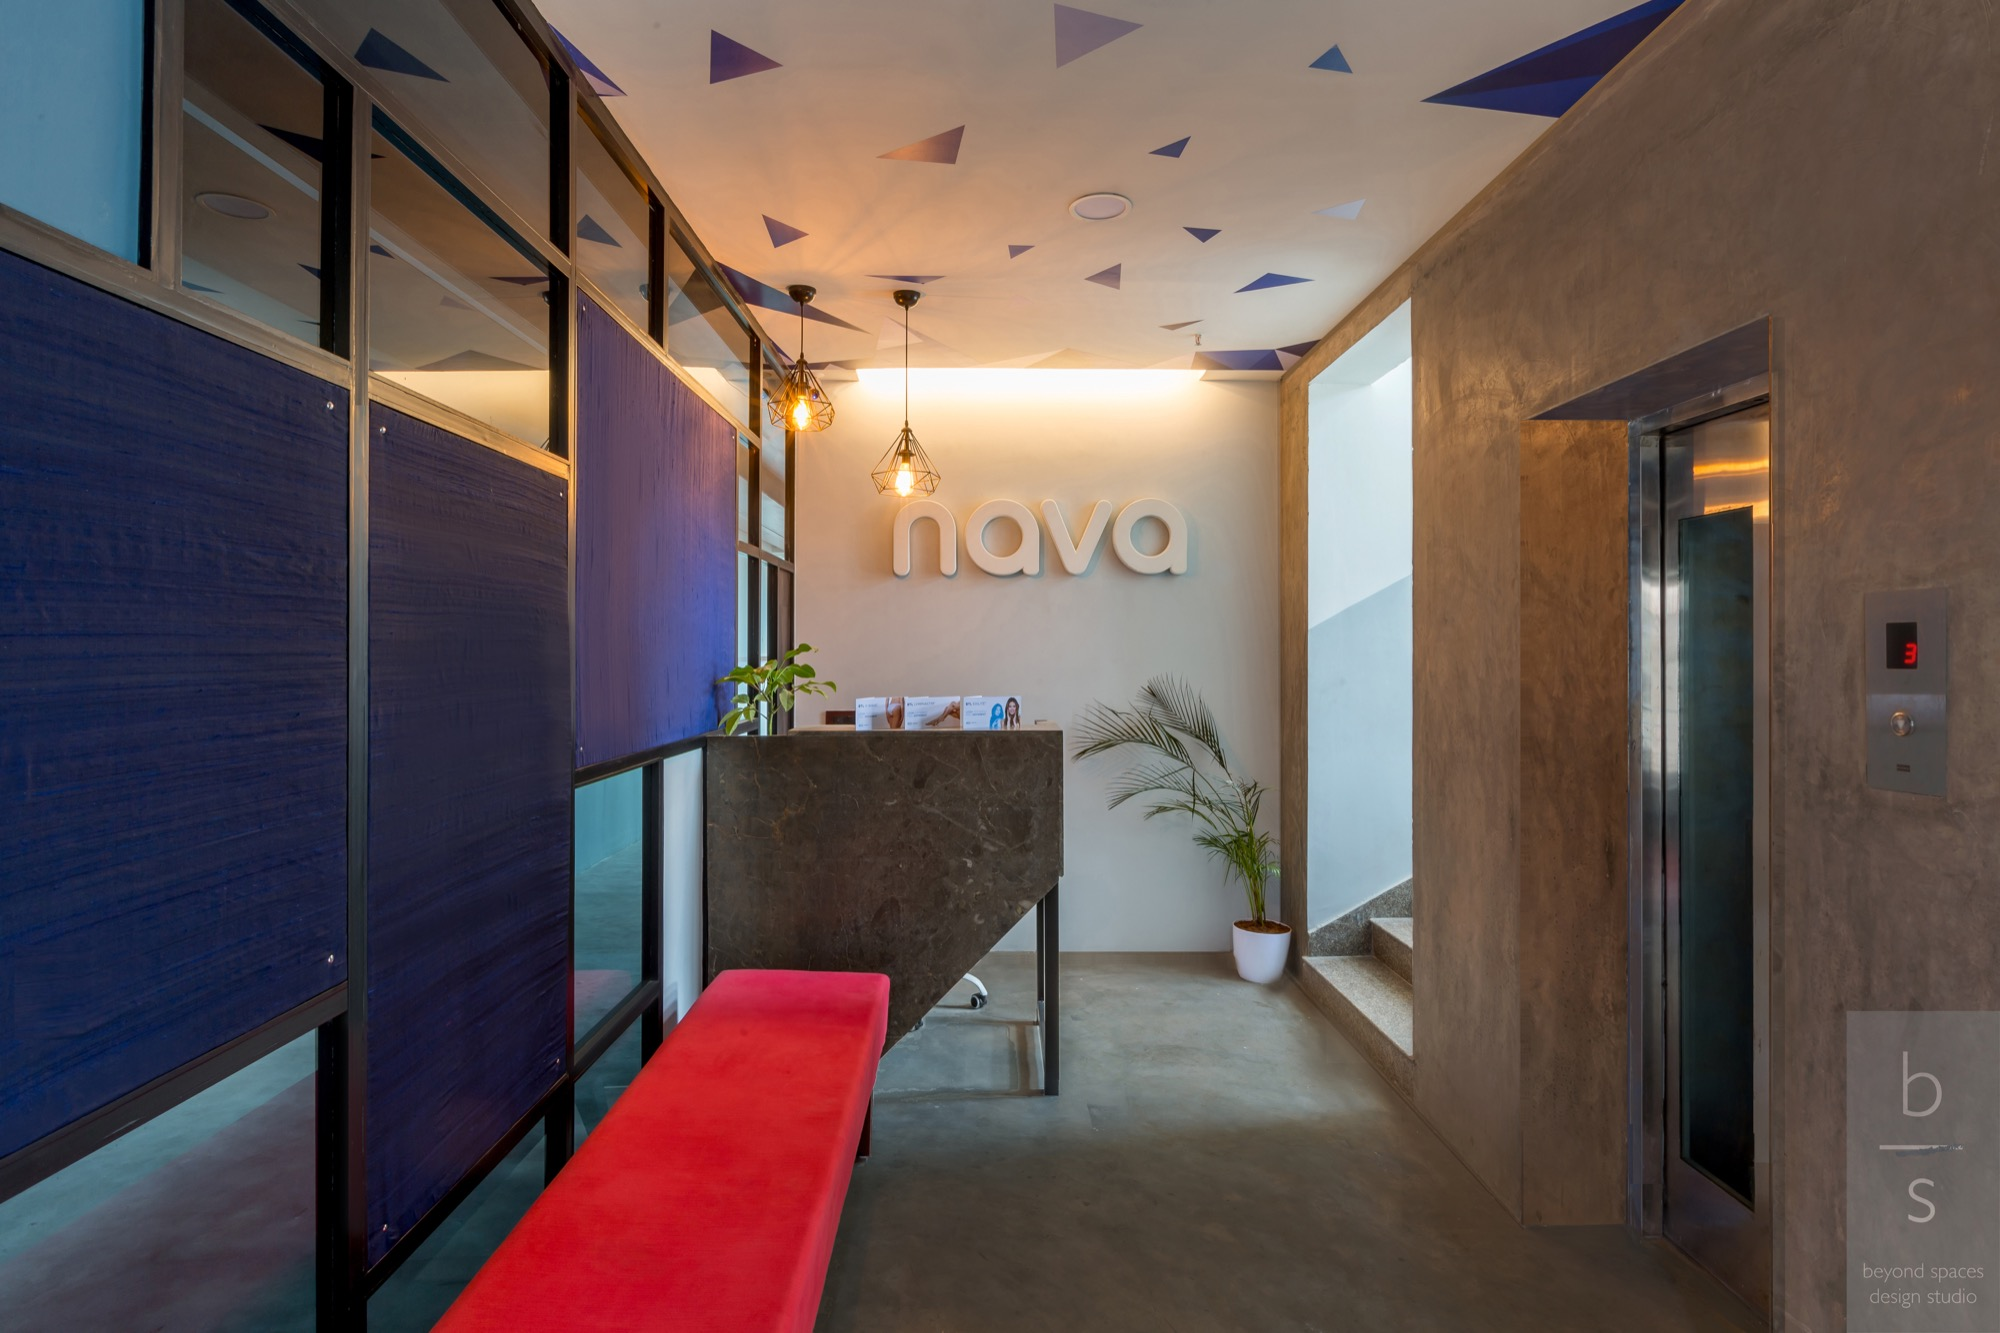 Nava Clinic at Hyderabad, An Earthy Oasis of Wellness, designed by Beyond Spaces Design Studio 3